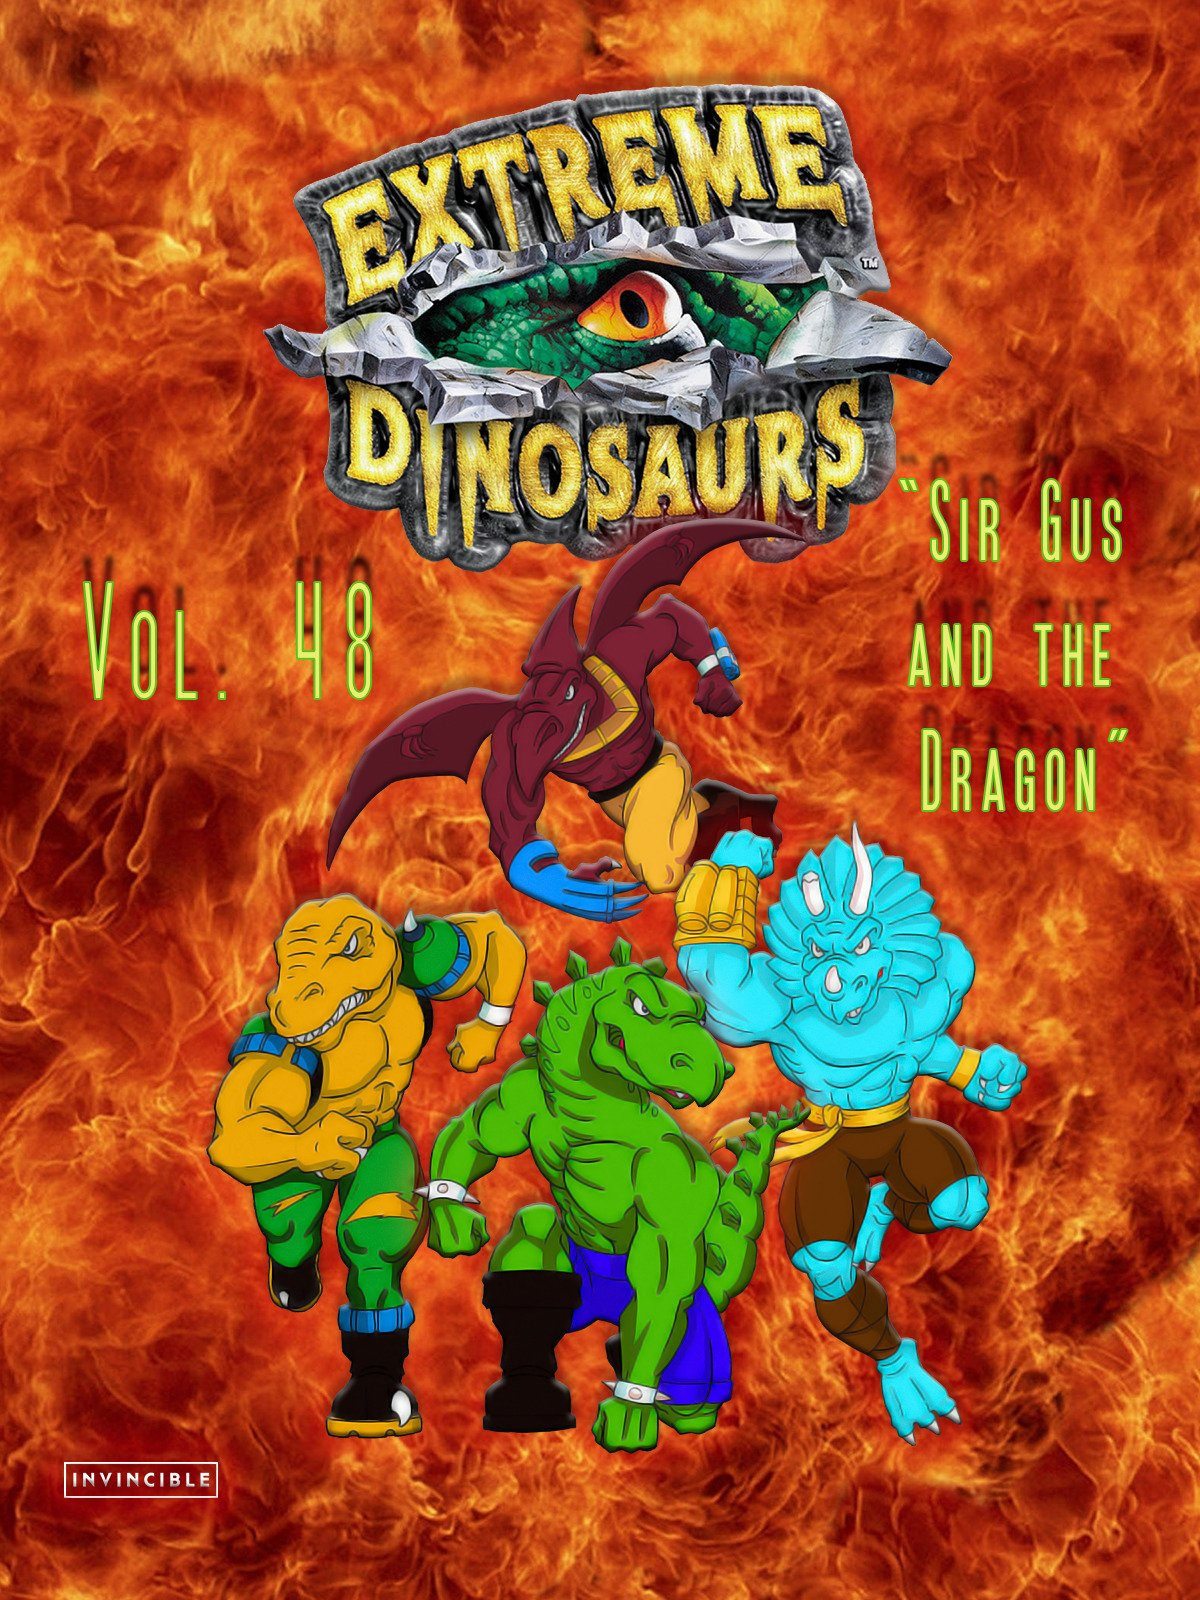 Extreme Dinosaurs Vol. 48Sir Gus and the Dragon